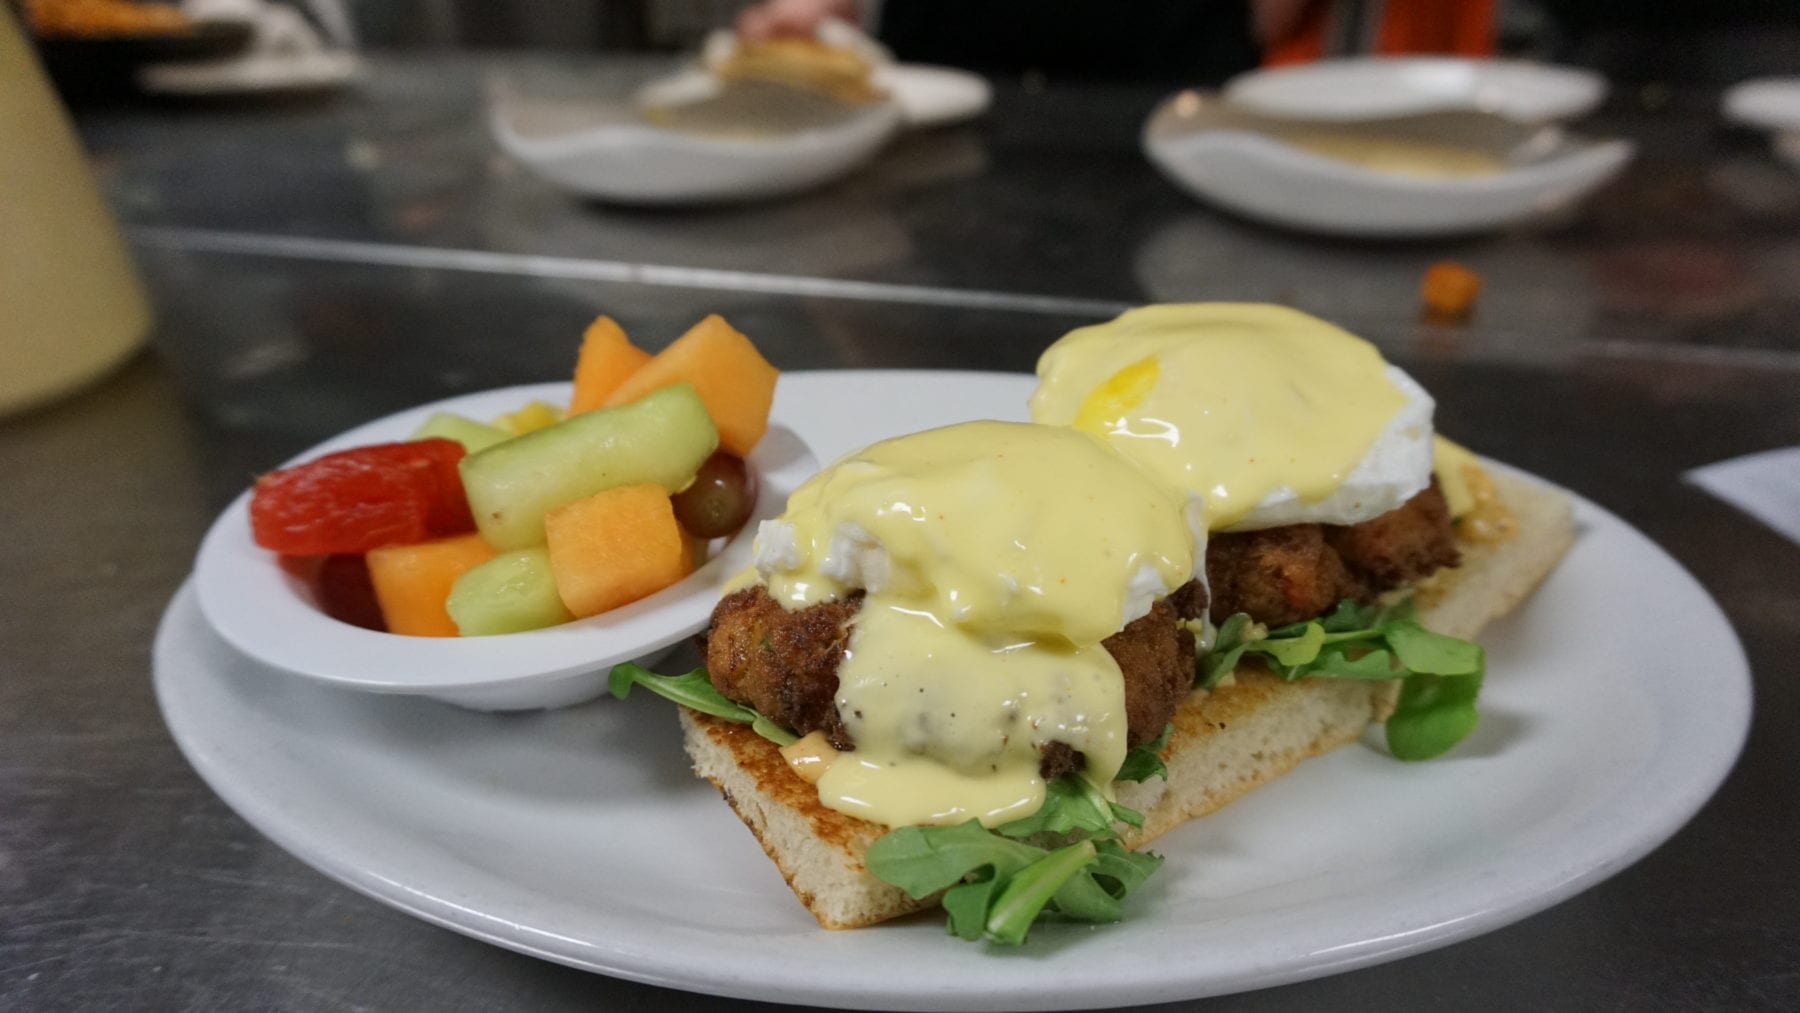 Crab cakes with poached eggs